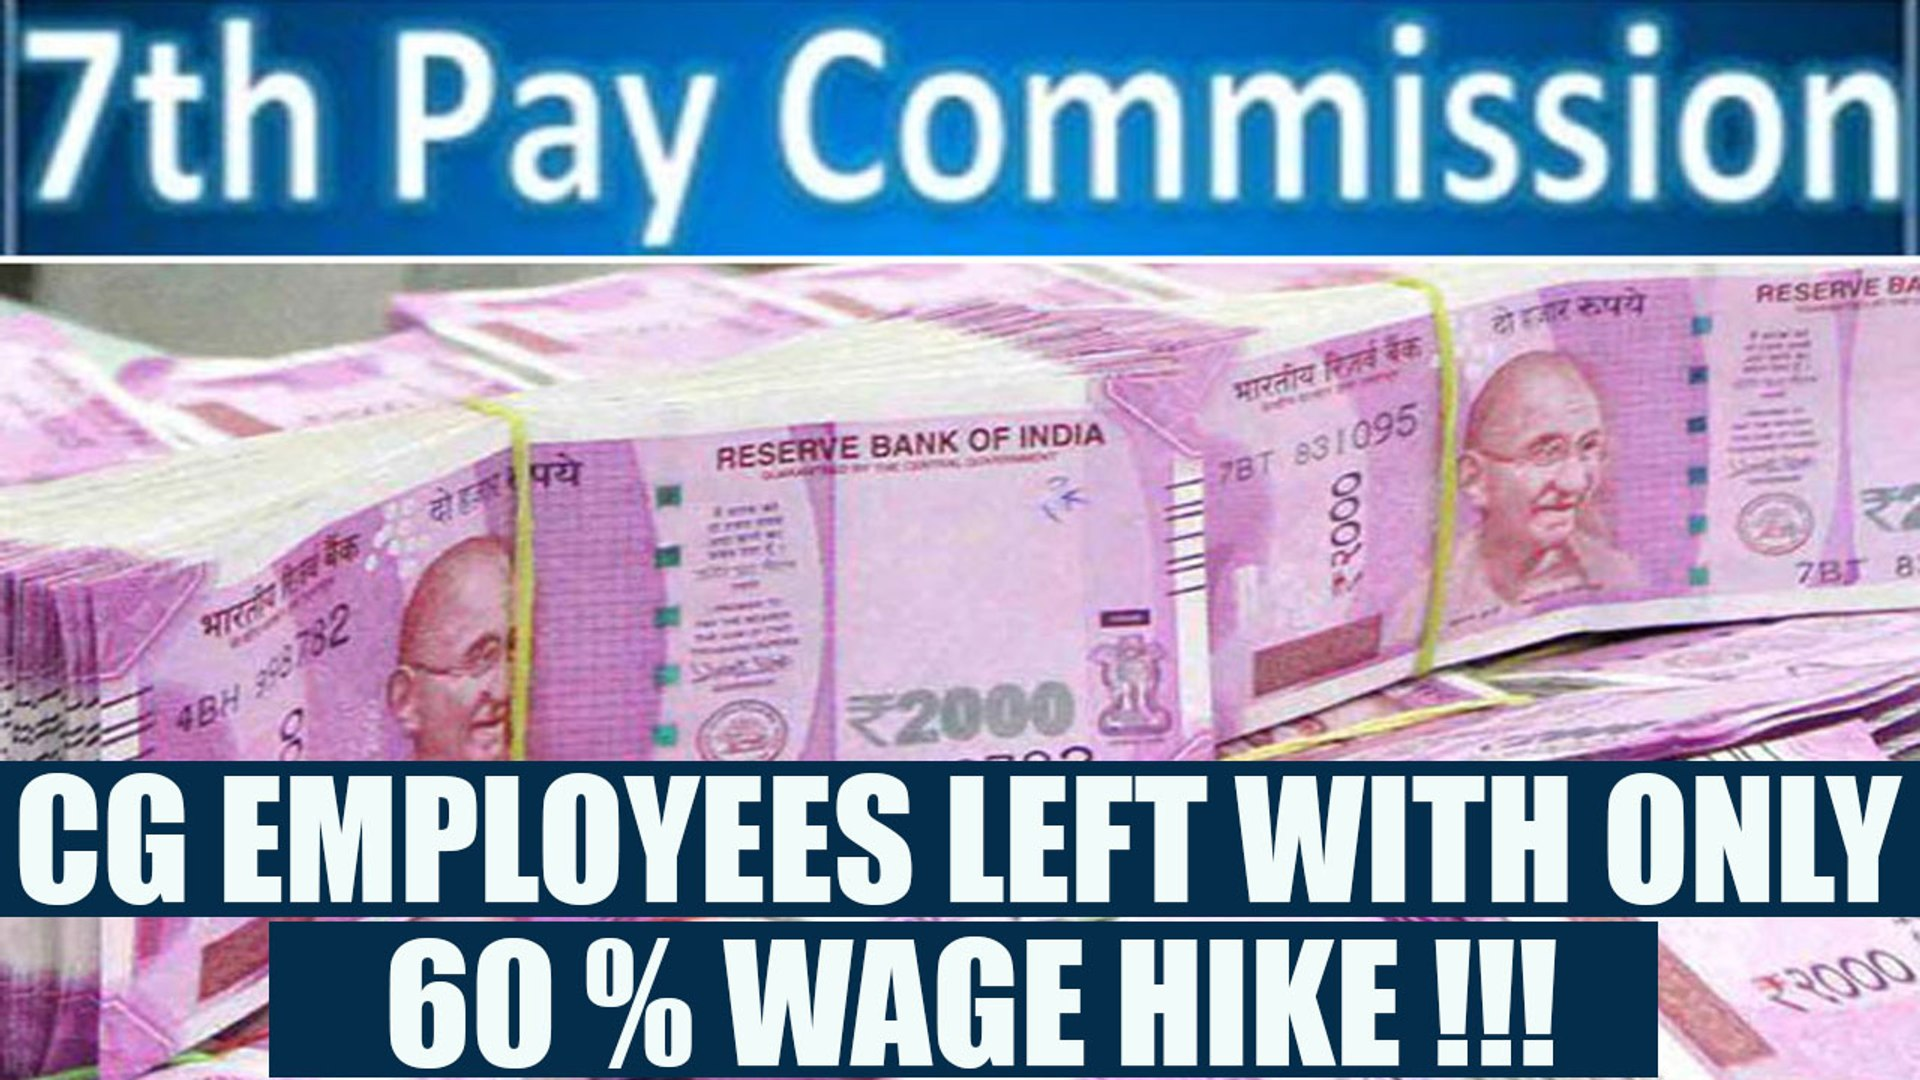 7th Pay Commission: CG employees get only 60% wage hike, worst ever | Oneindia News